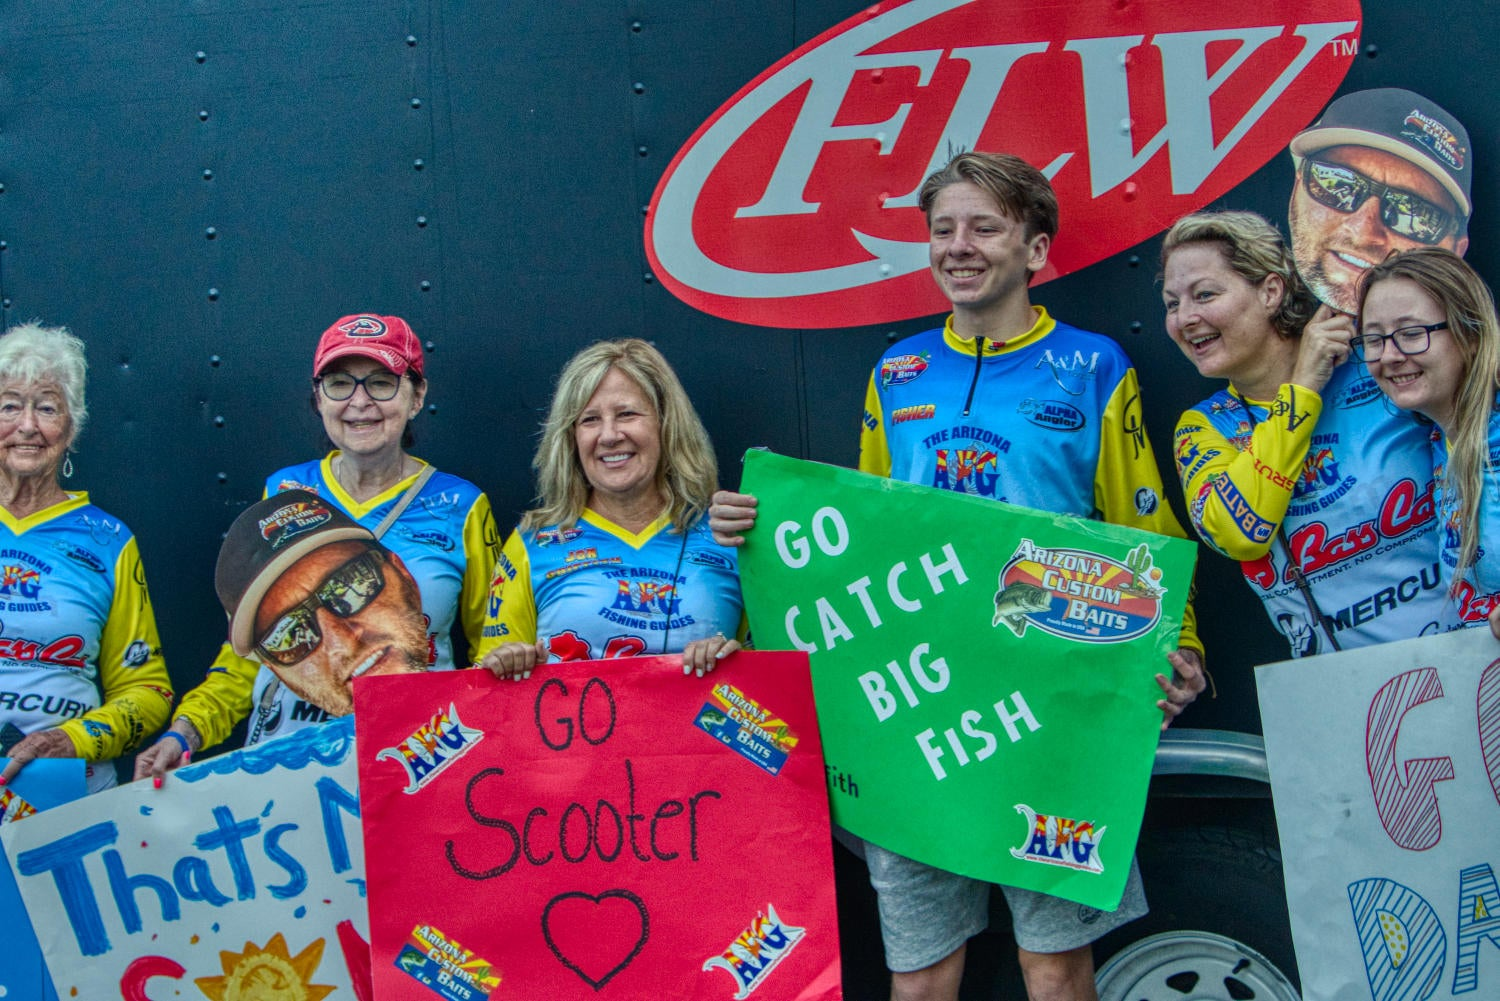 flw-cup-day2-11.jpg